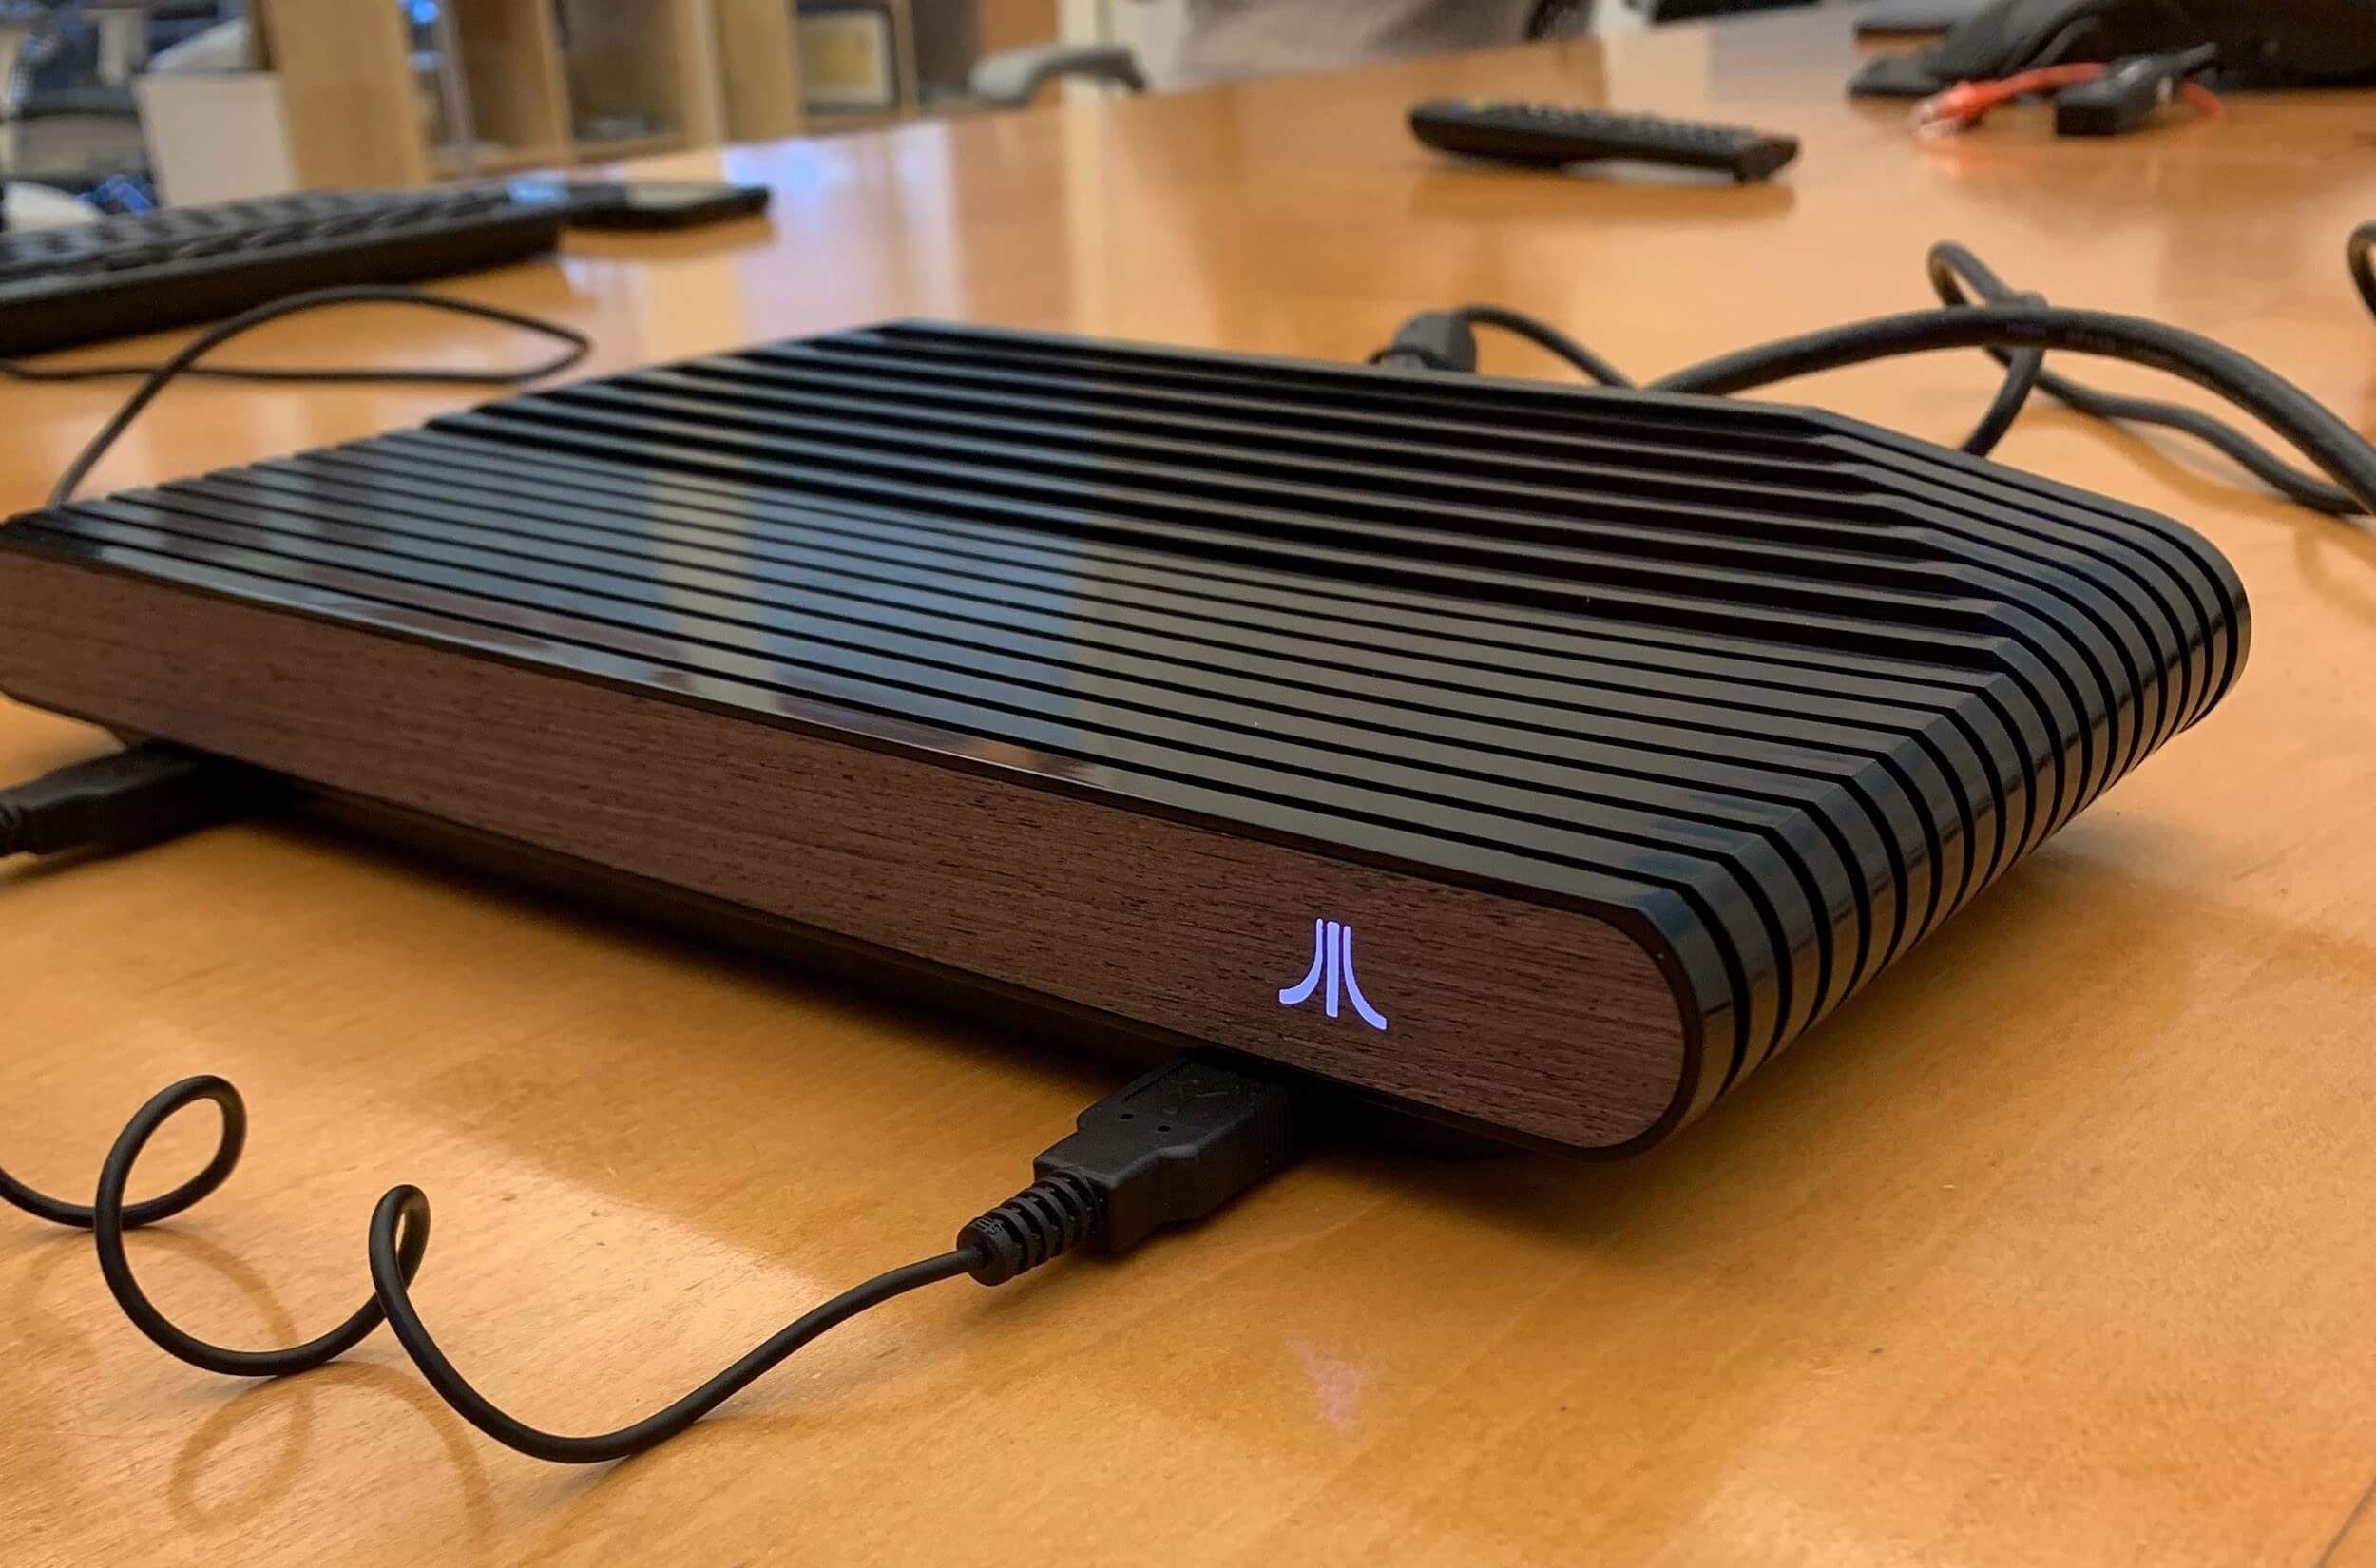 Atari loses VCS console architect after reportedly missing payments